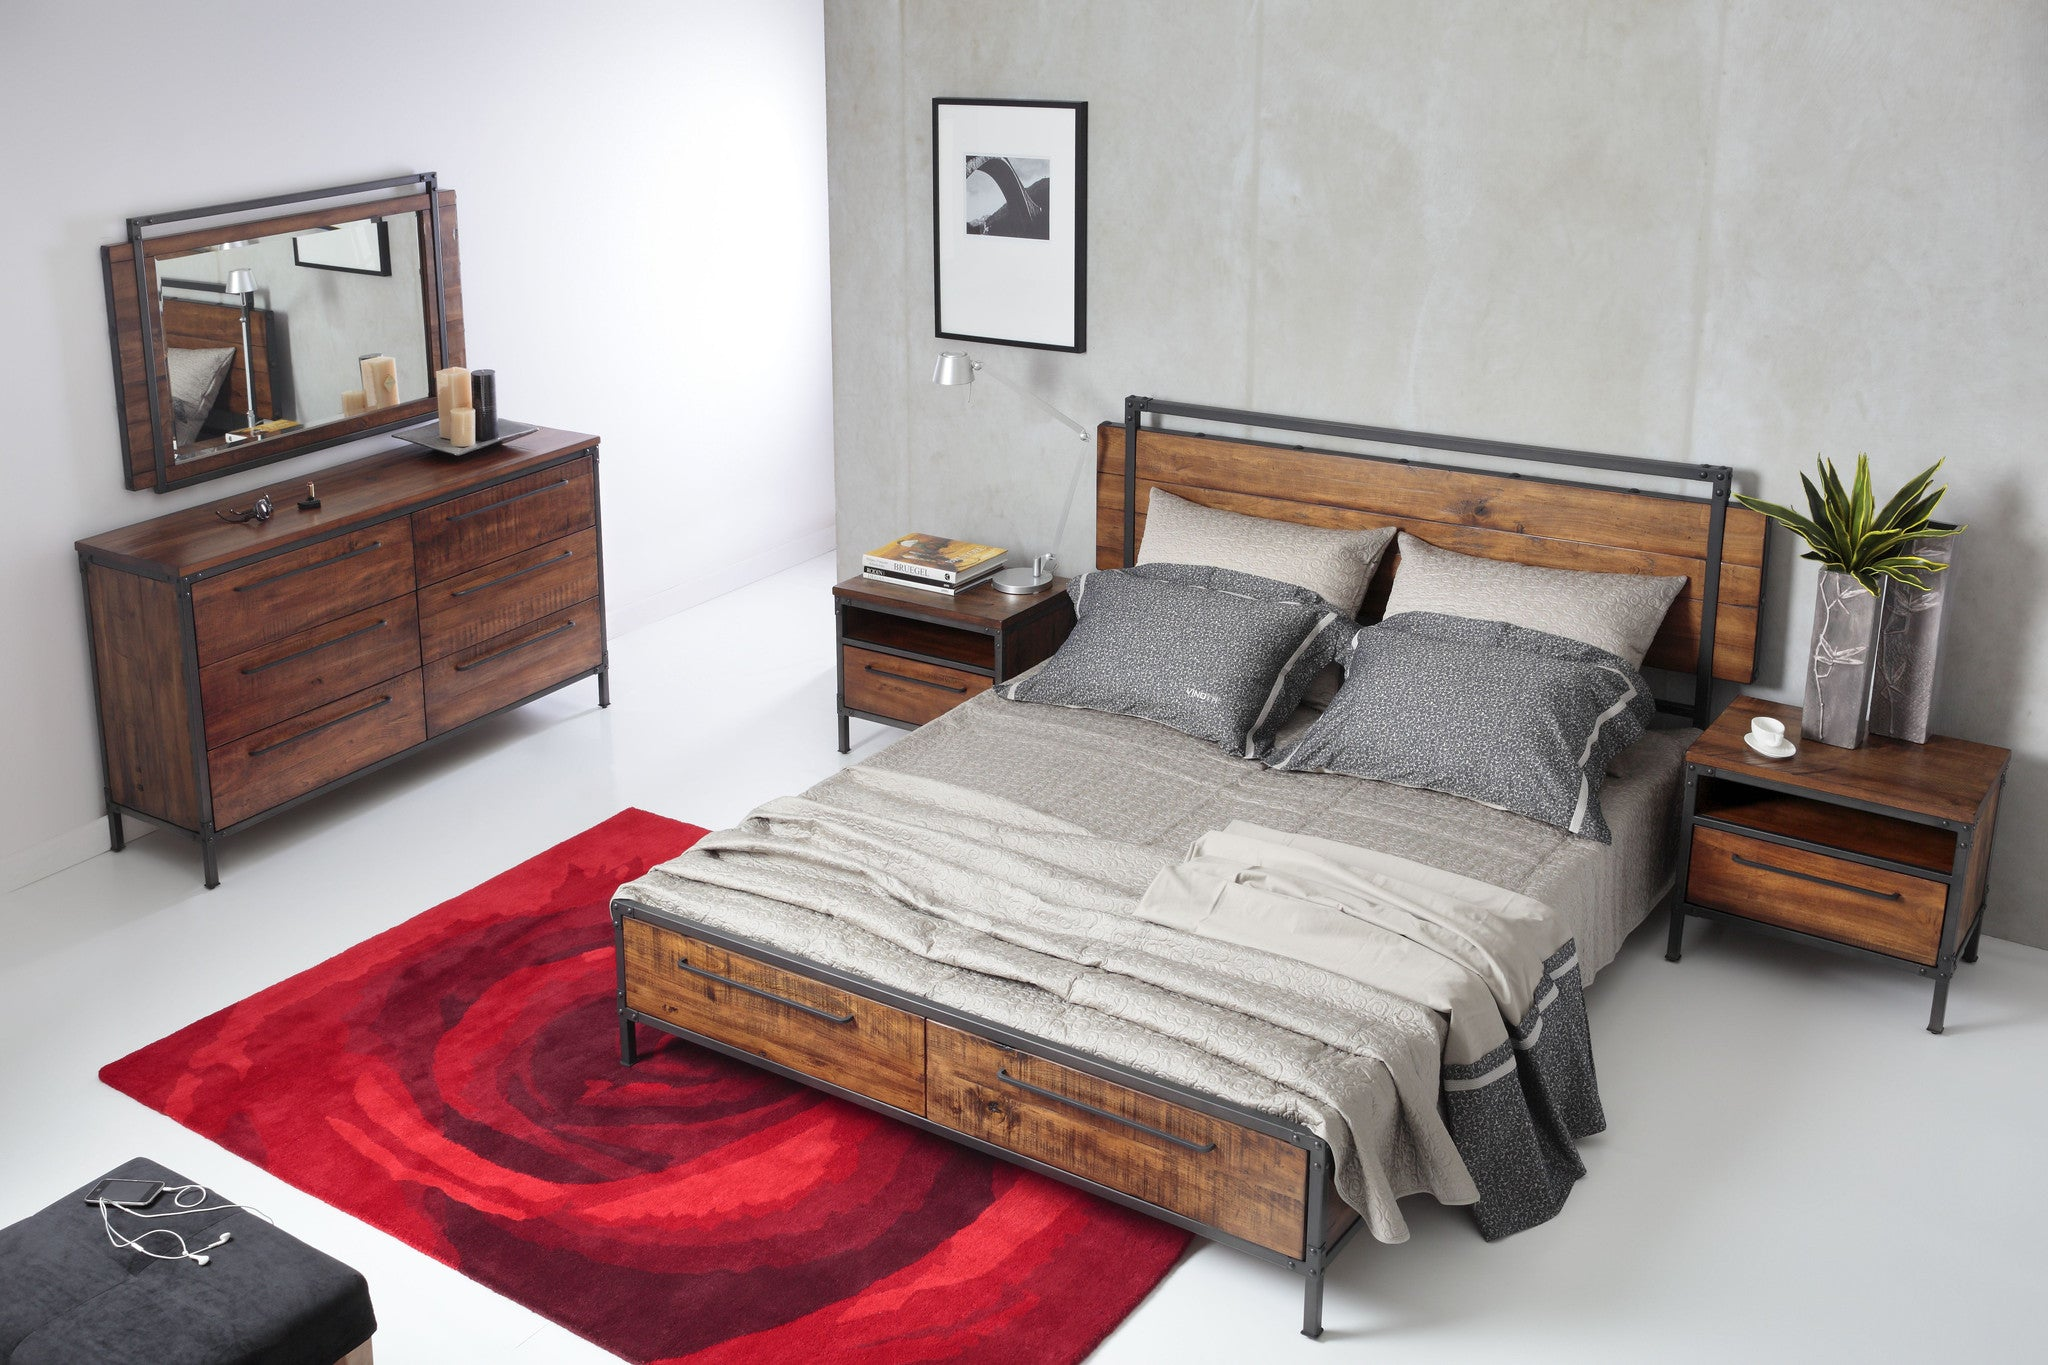 Chicago Queen Bed With Drawers Picket Amp Rail Singapore S